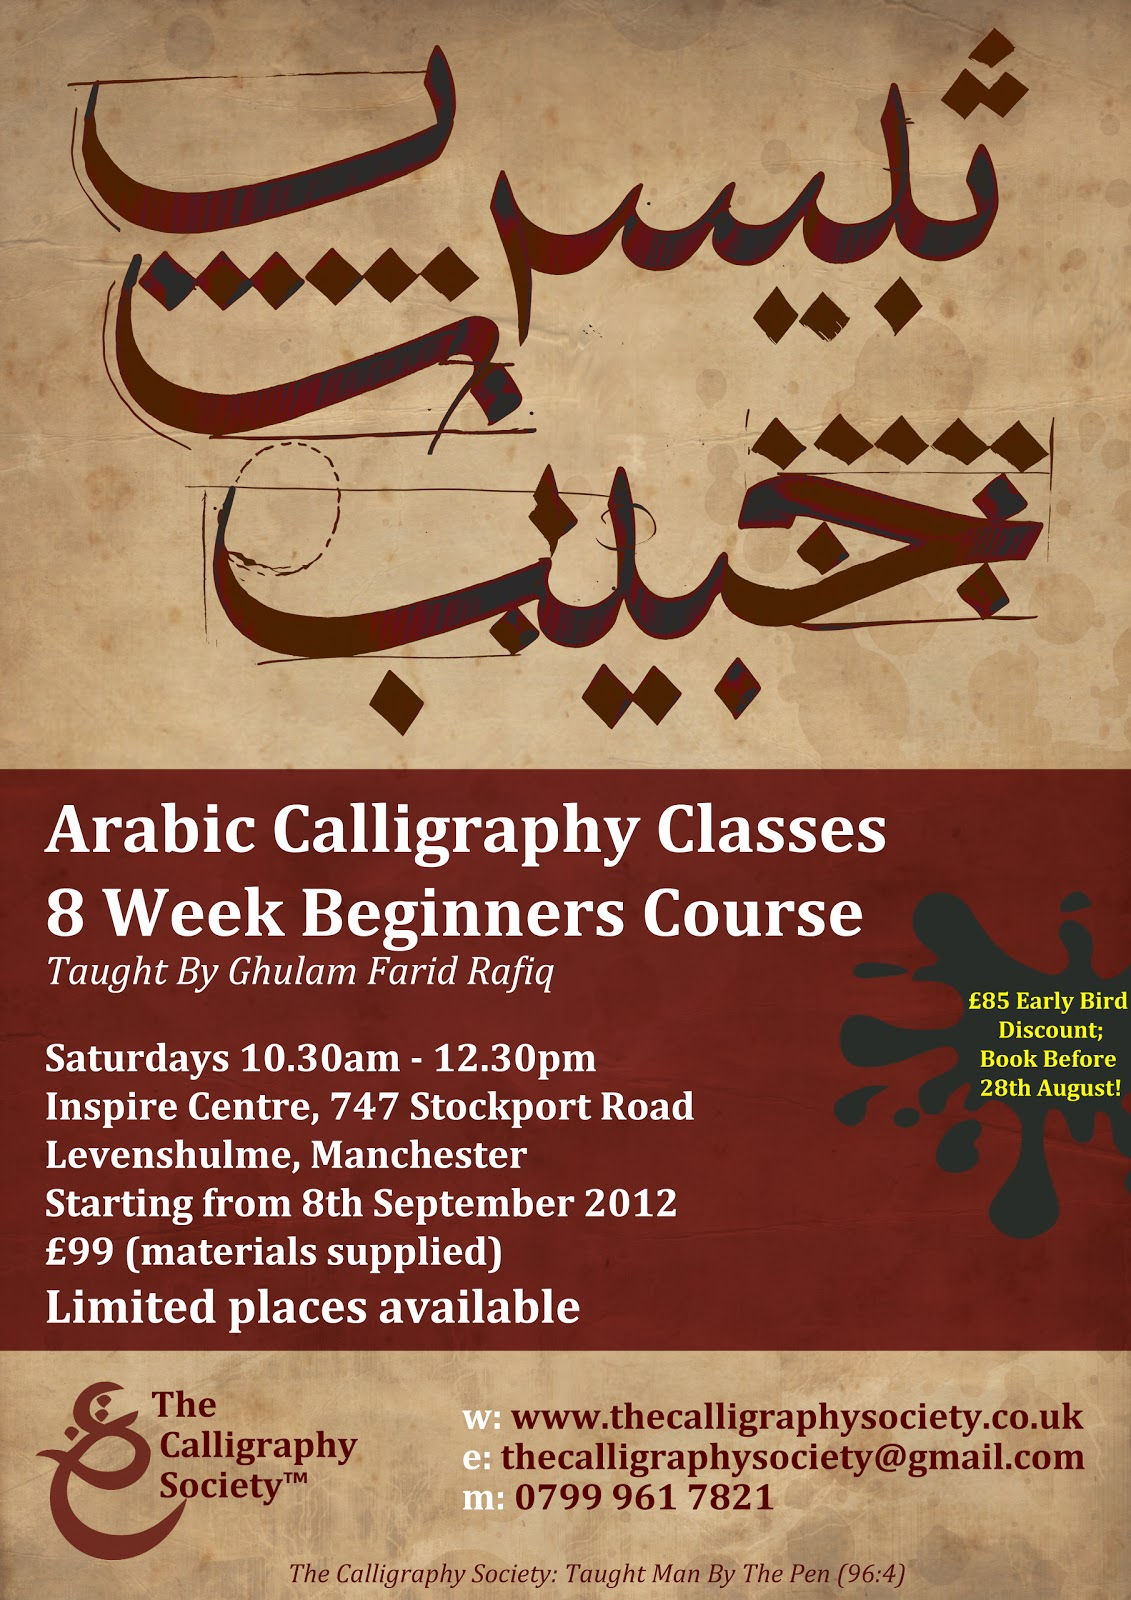 The Calligraphy Society Classes